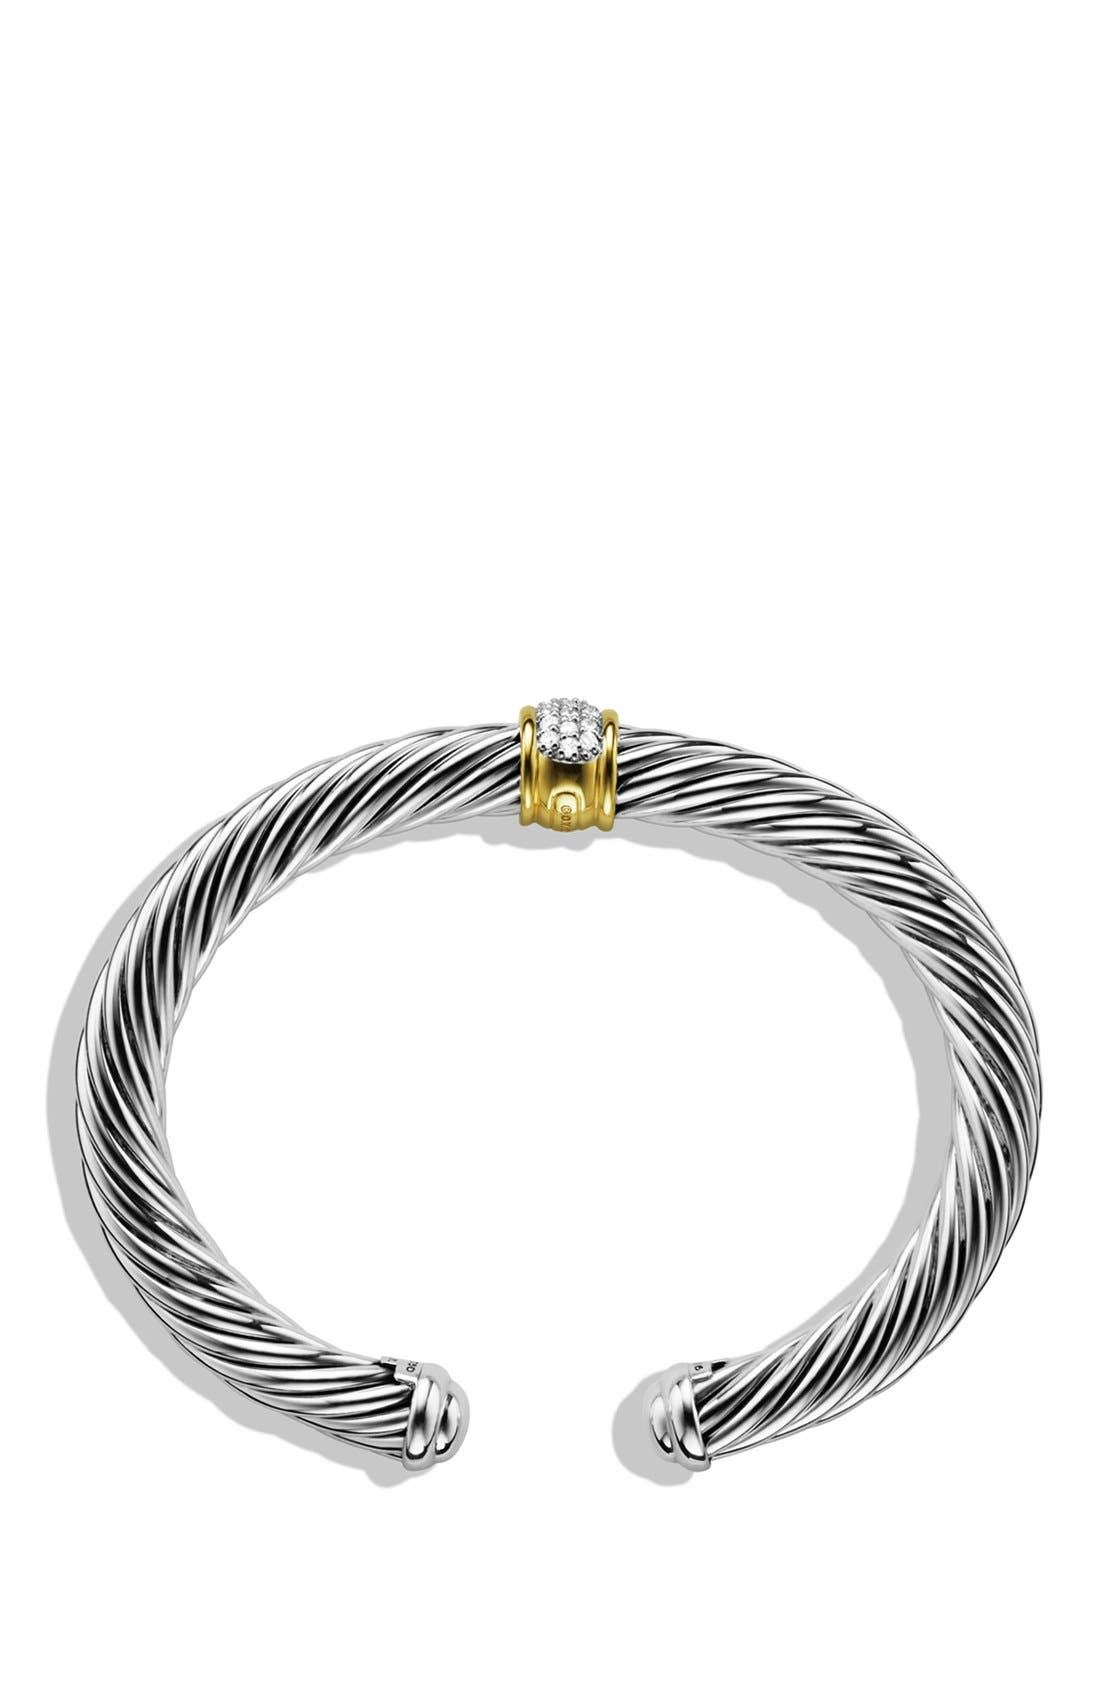 Cable Classics Bracelet with Diamonds & 18K Gold, 7mm,                             Alternate thumbnail 3, color,                             DIAMOND